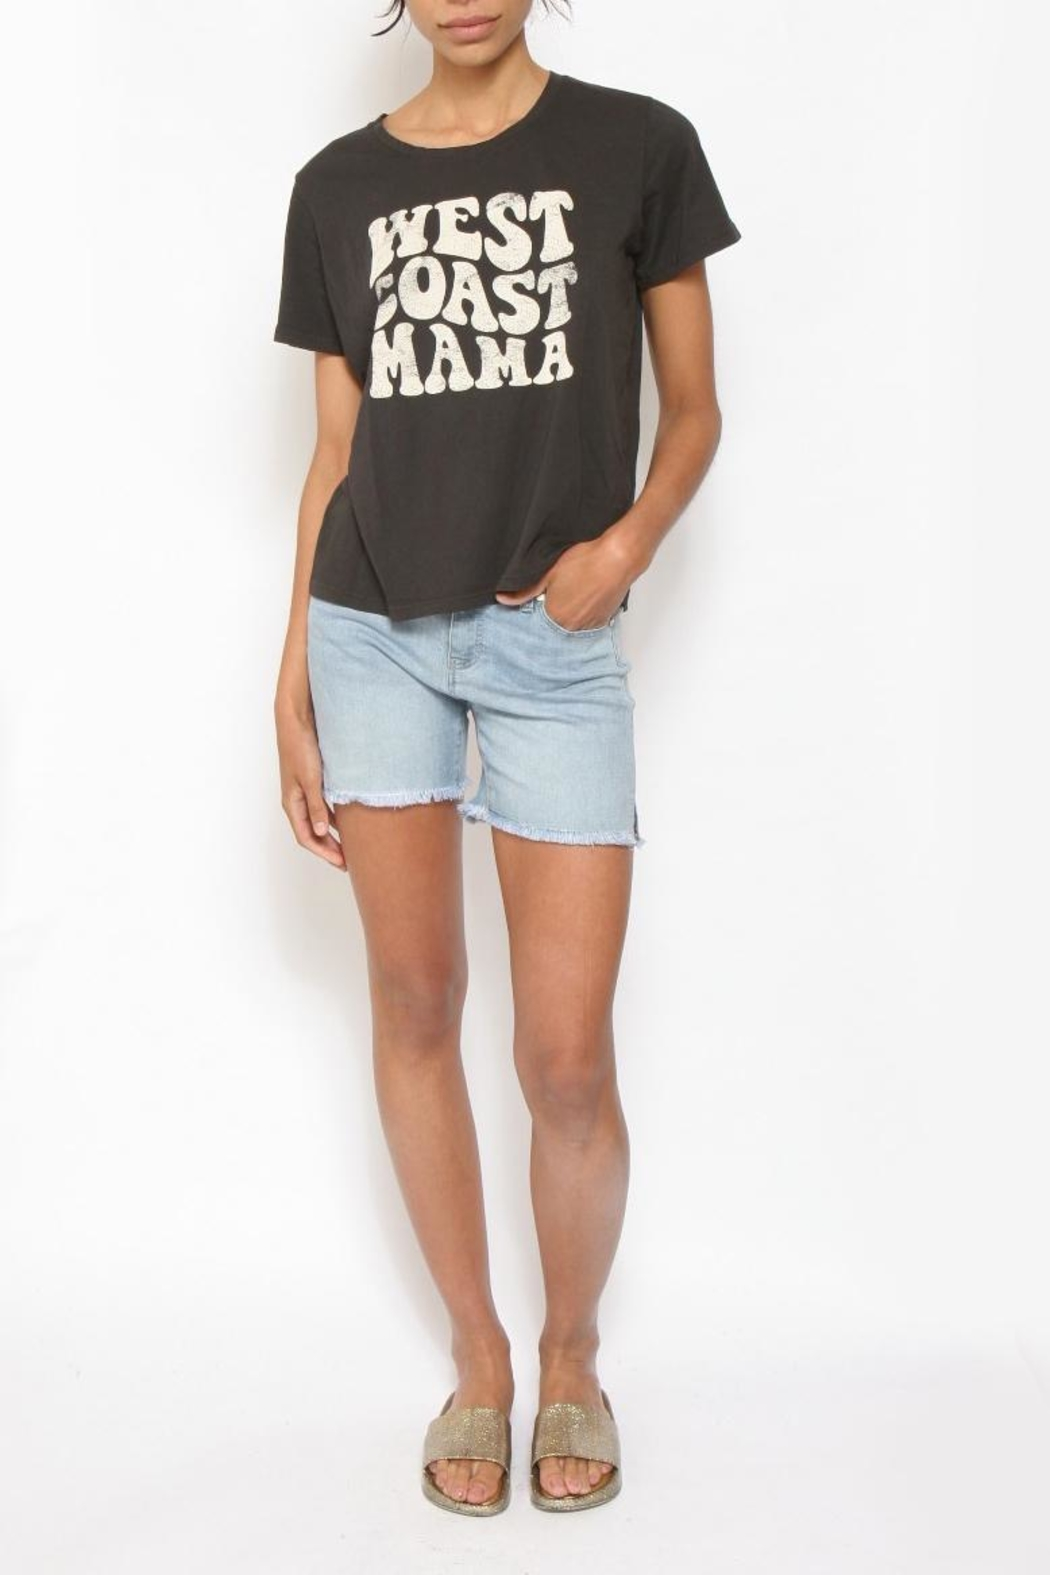 Feather 4 Arrow West-Coast Mama Tee - Front Cropped Image